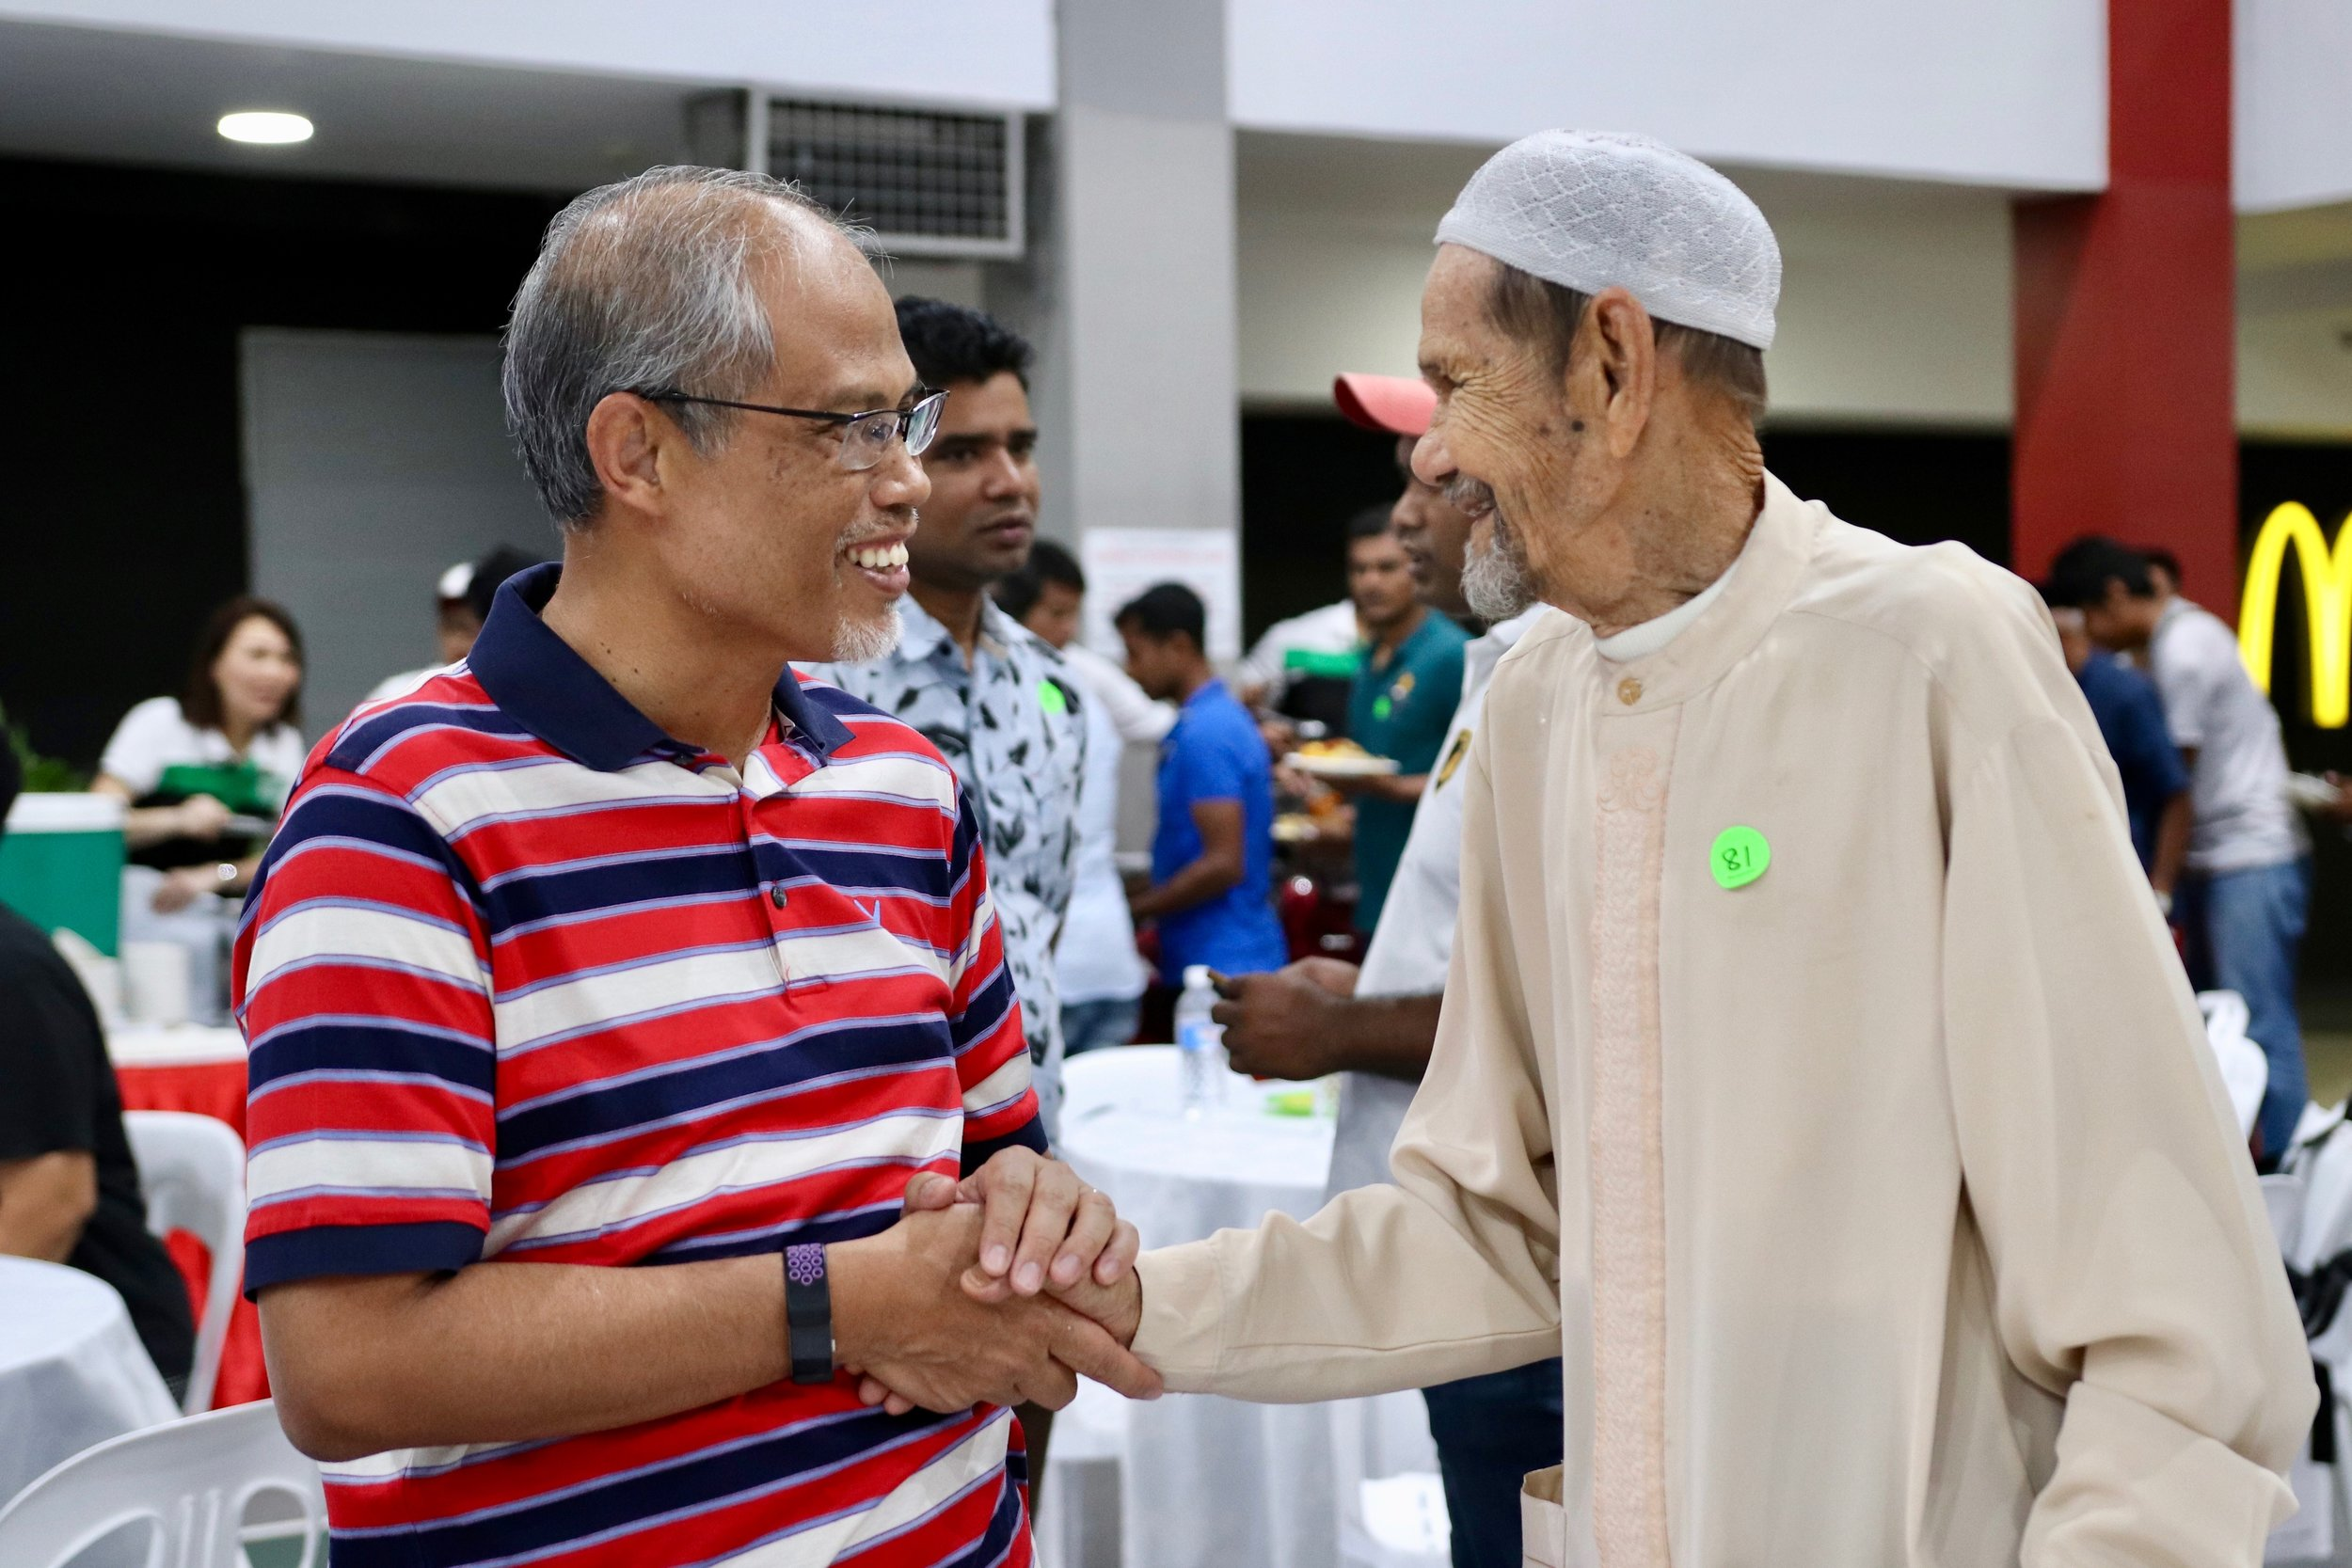 Guest-of-Honour, Minister Masagos Zulkifli thanking the cleaners individually